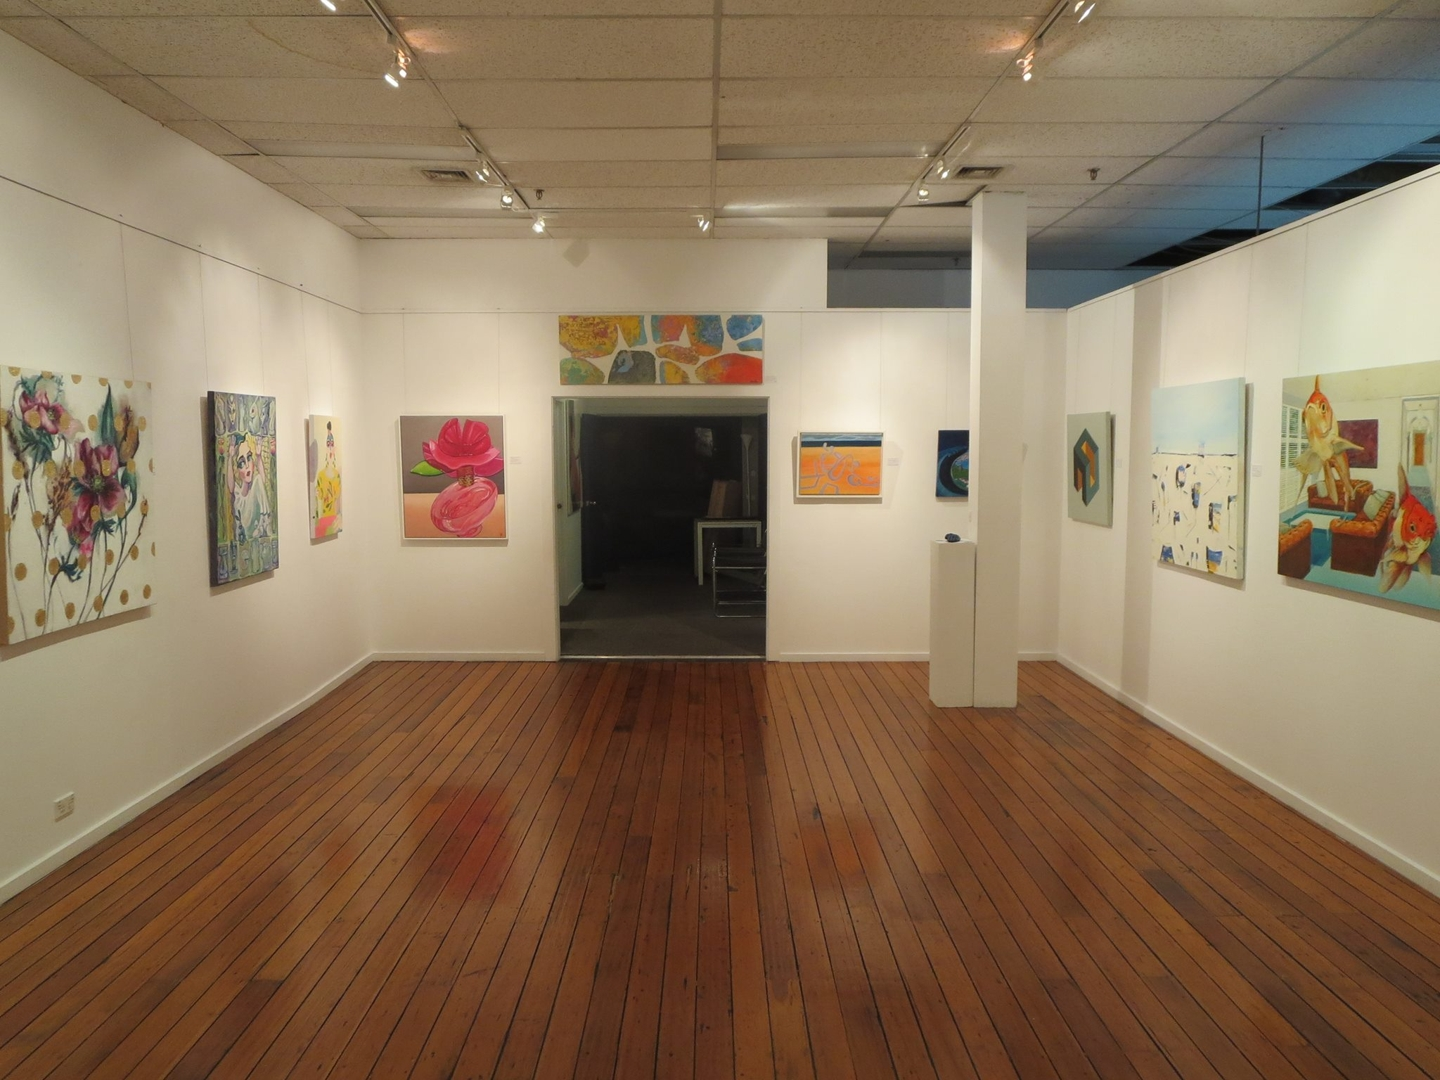 Swan Street Artists Group exhibition image